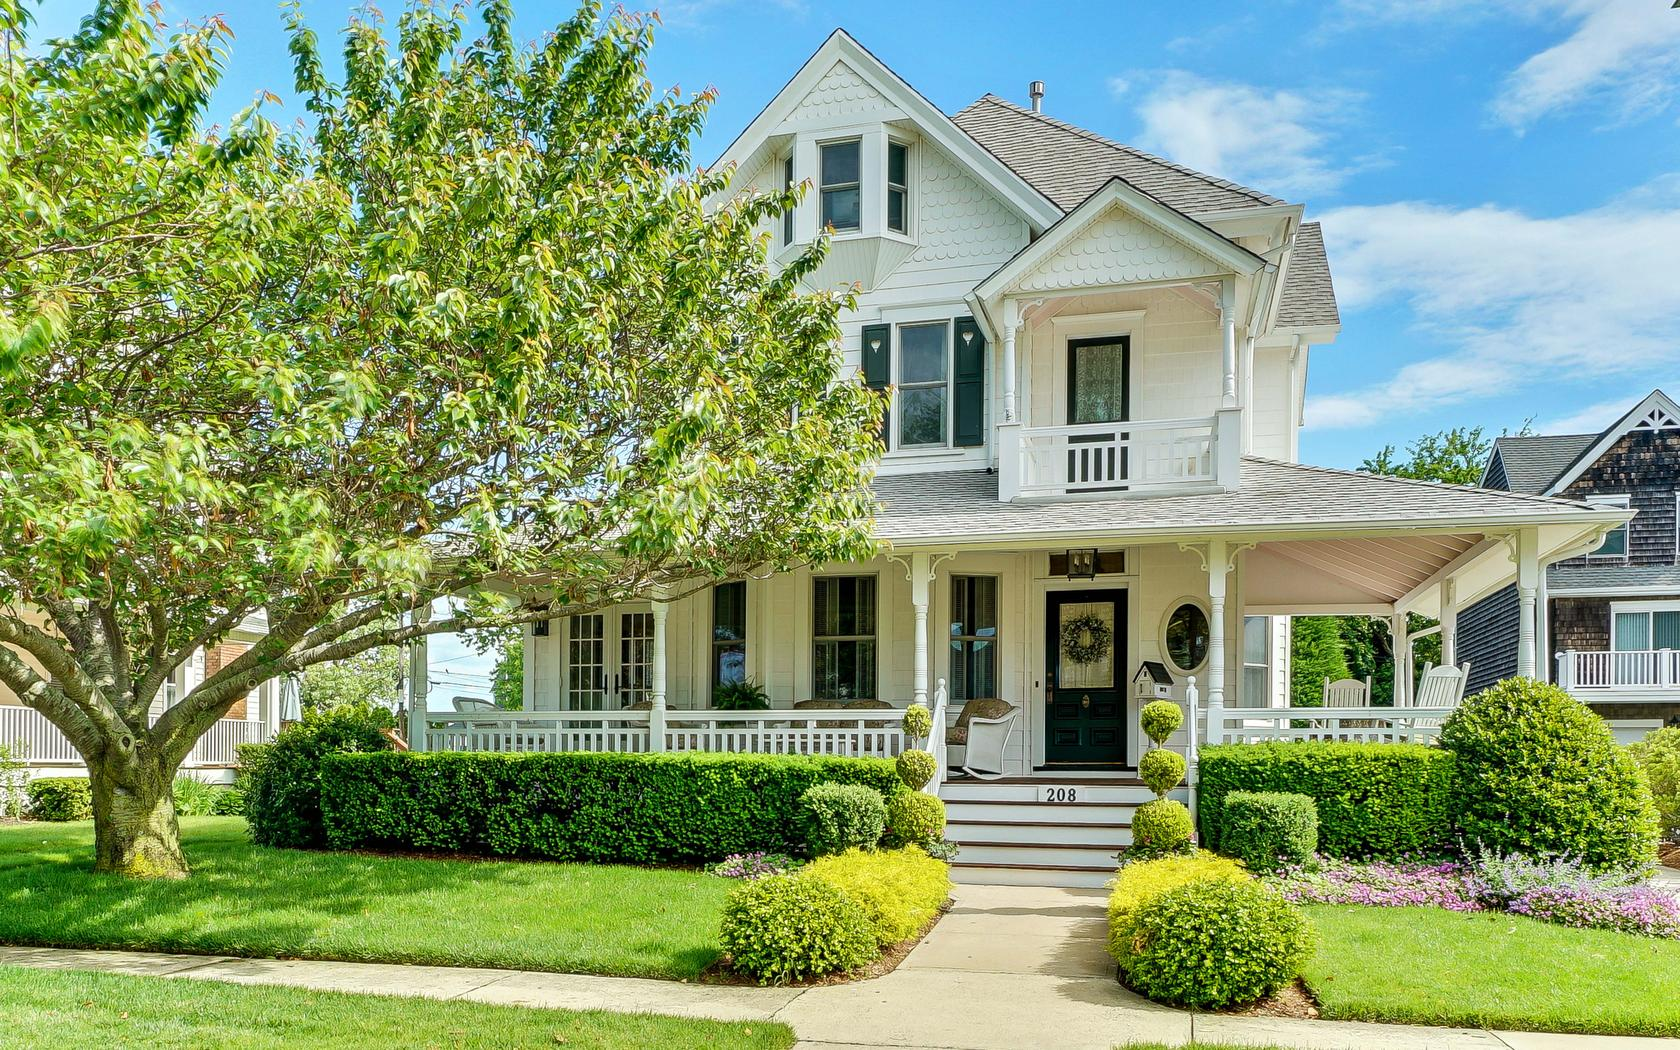 Single Family Home for Sale at Unrivaled Victorian! 208 2nd Avenue Belmar, New Jersey 07719 United States